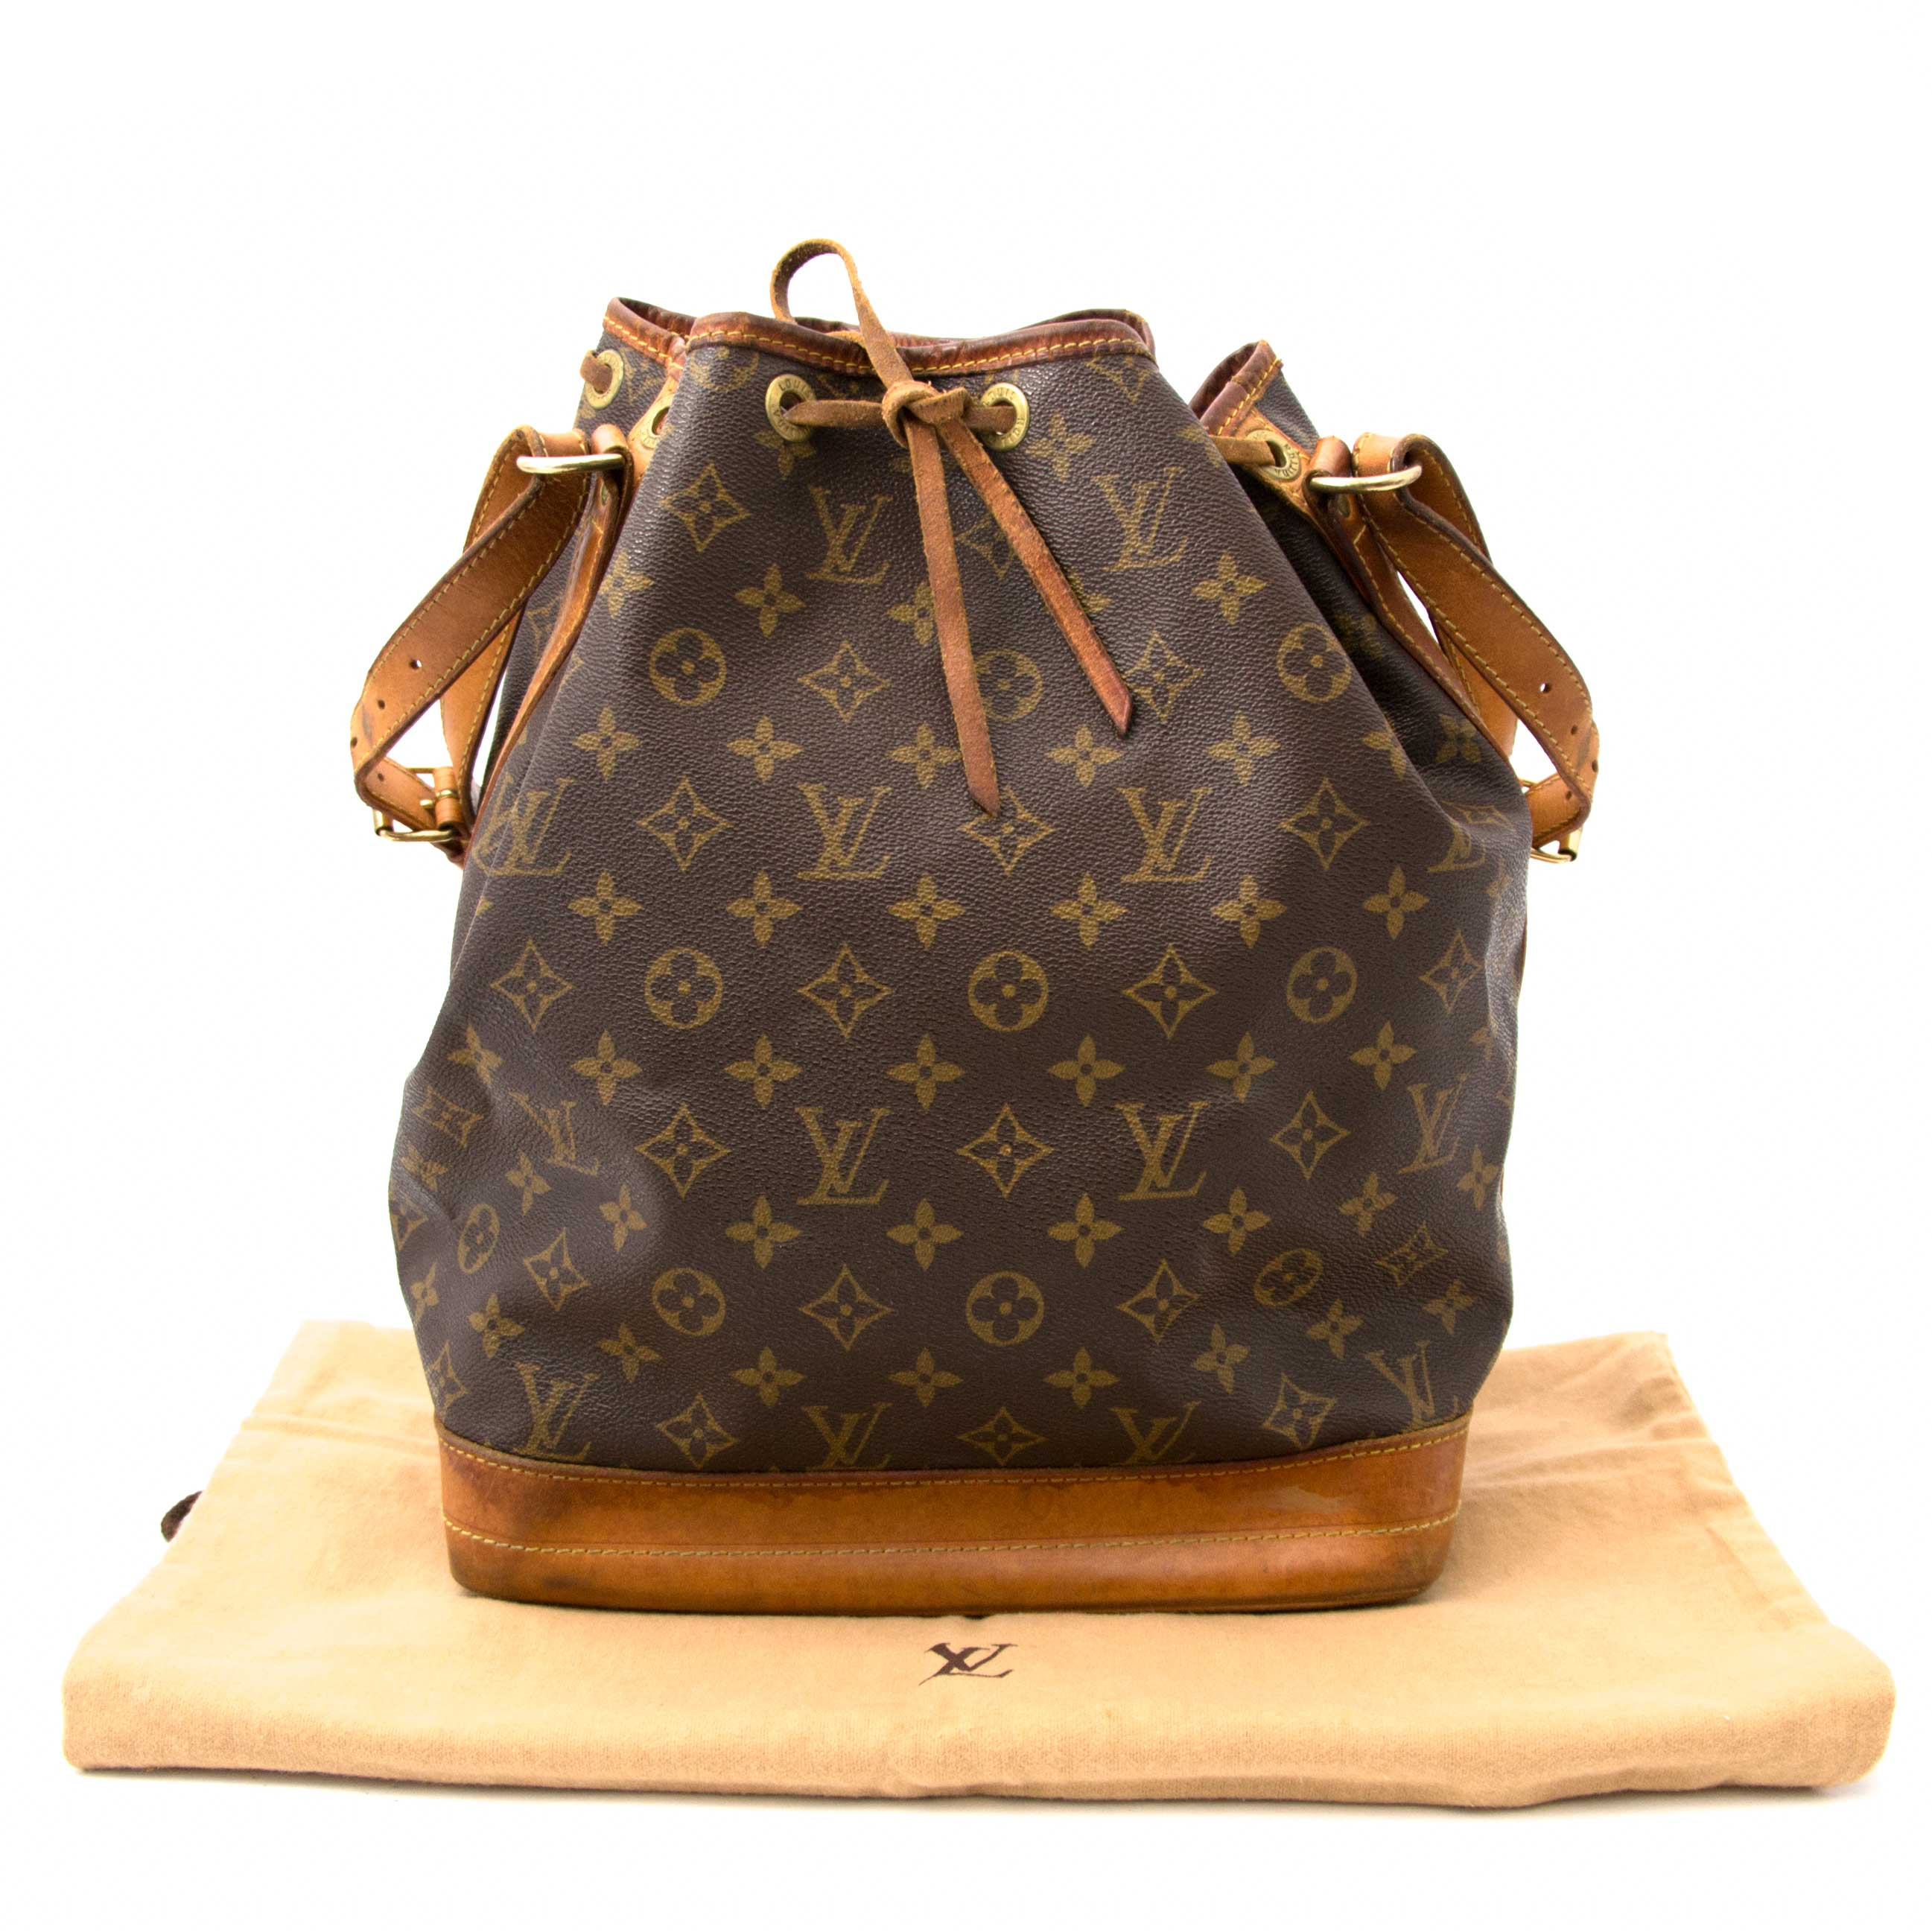 Louis Vuitton Noé BB Monogram Bucket Bag vintage secondhand